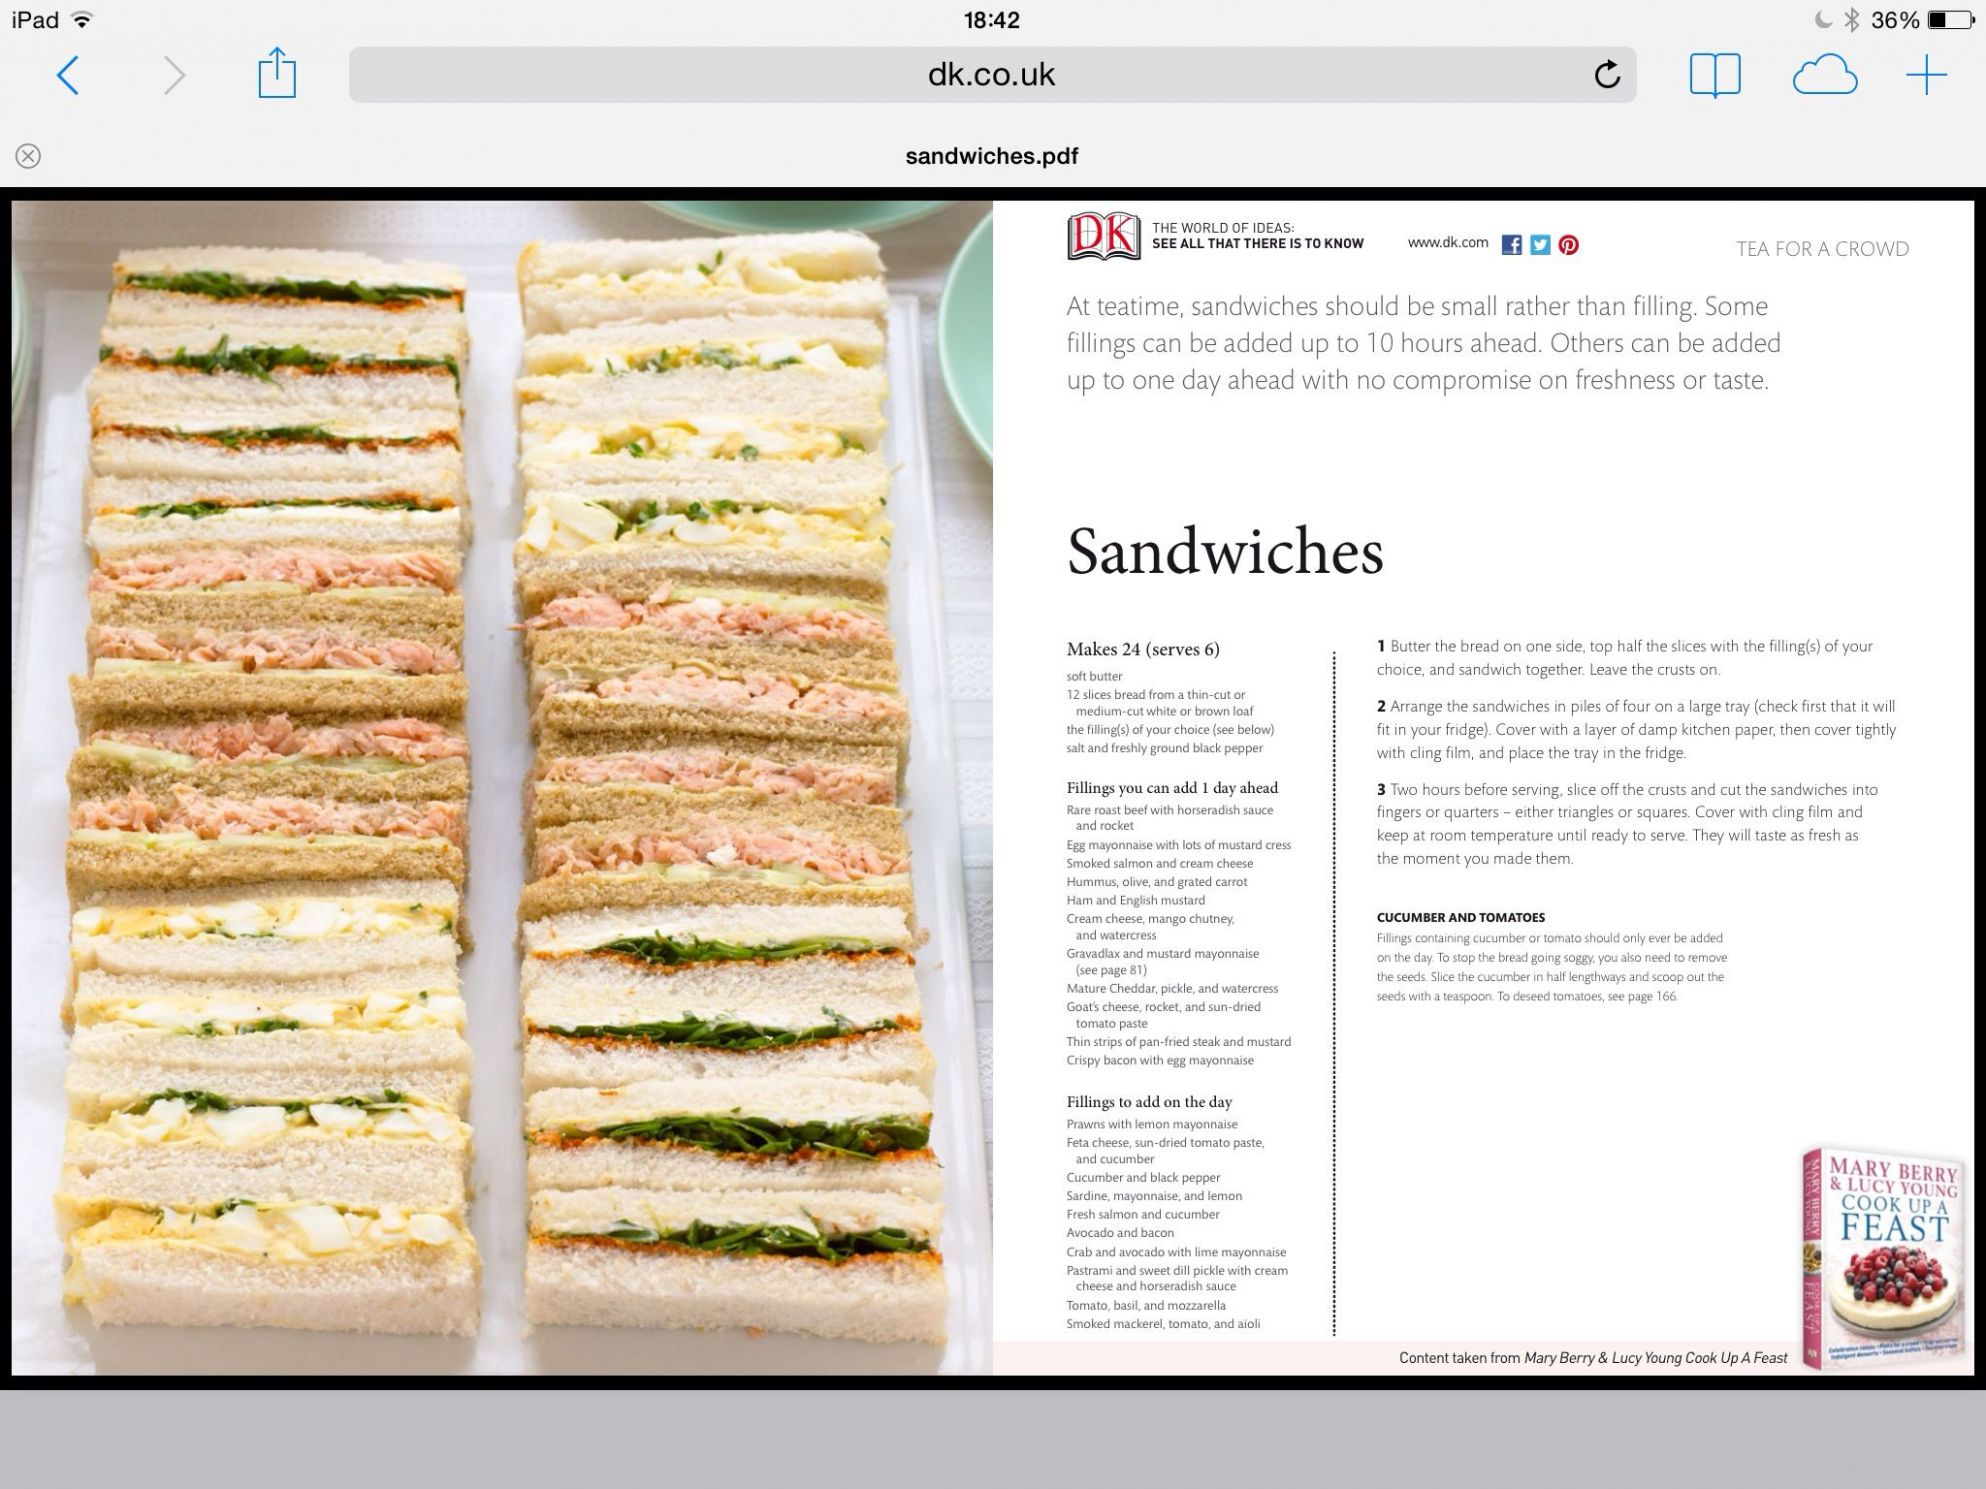 Mary Berry Tea Party Sandwiches | Mary berry sandwiches, Mary ...